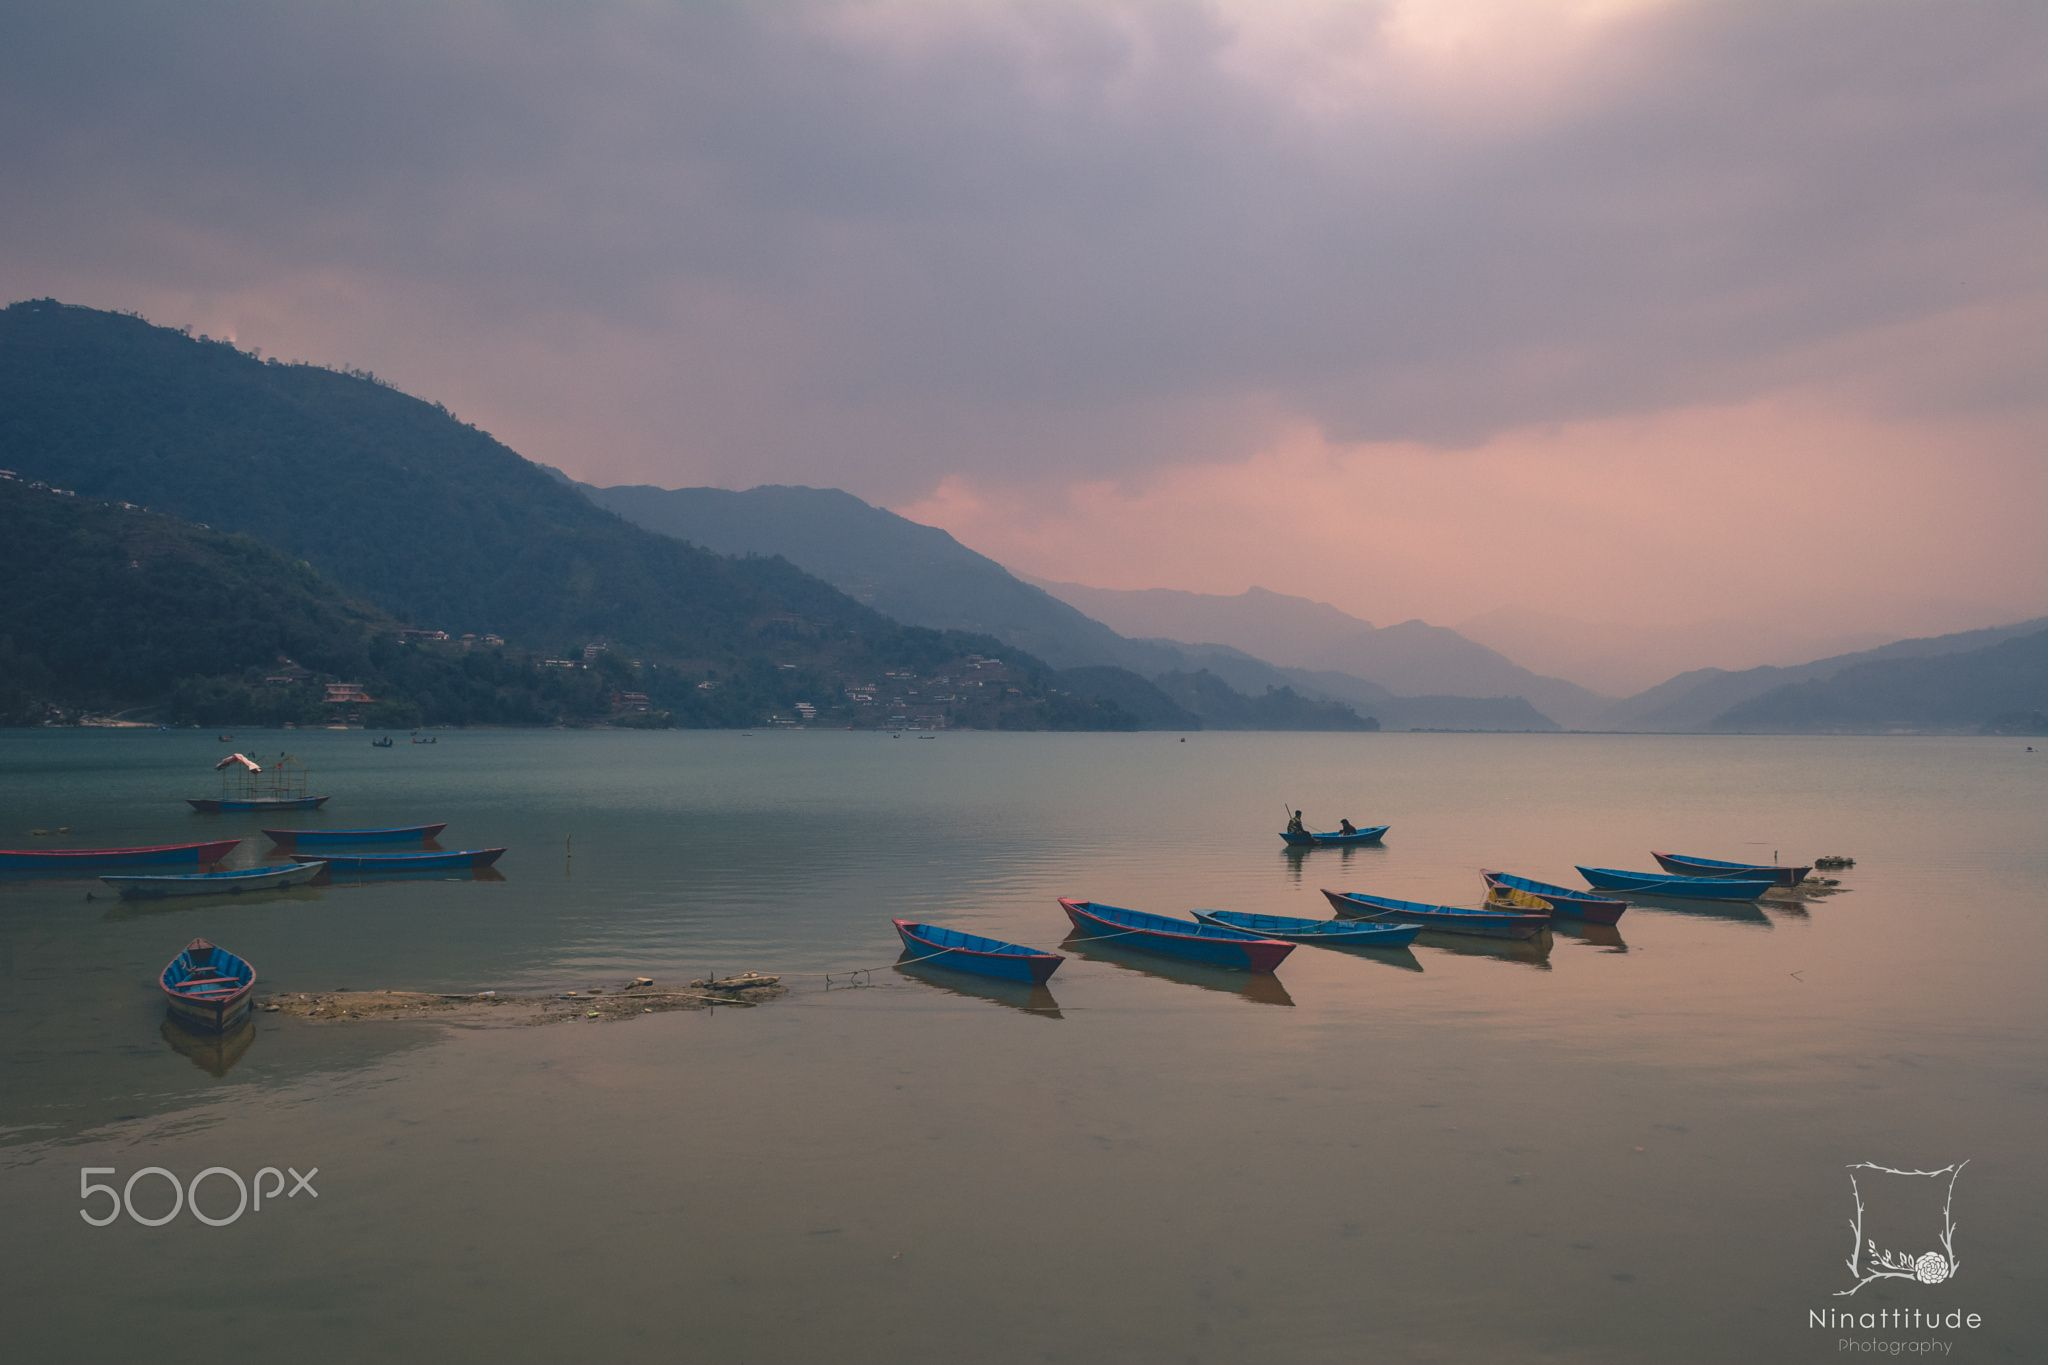 Purple journeys ~ - A rainy afternoon in Pokhara resulted in the most beautiful colored skies, reflecting on Fewa Lake, everything was silent as the boats floated in a sea of colors, everything was suspended in light, waiting for the journey to continue ~